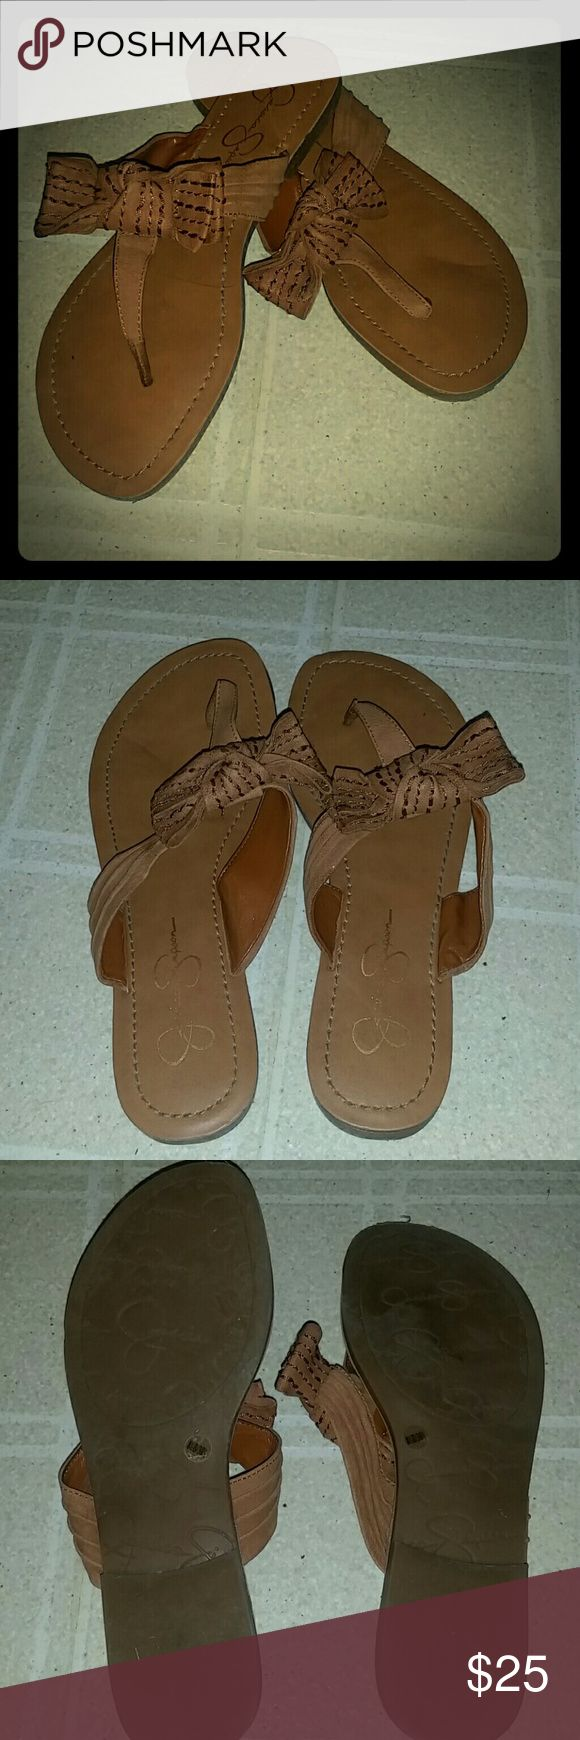 Jessica Simpson Sandals ?? Tan Flip Flops; super comfy just a size too small for me; worn once; very flattering with any outfit Jessica Simpson Shoes Sandals